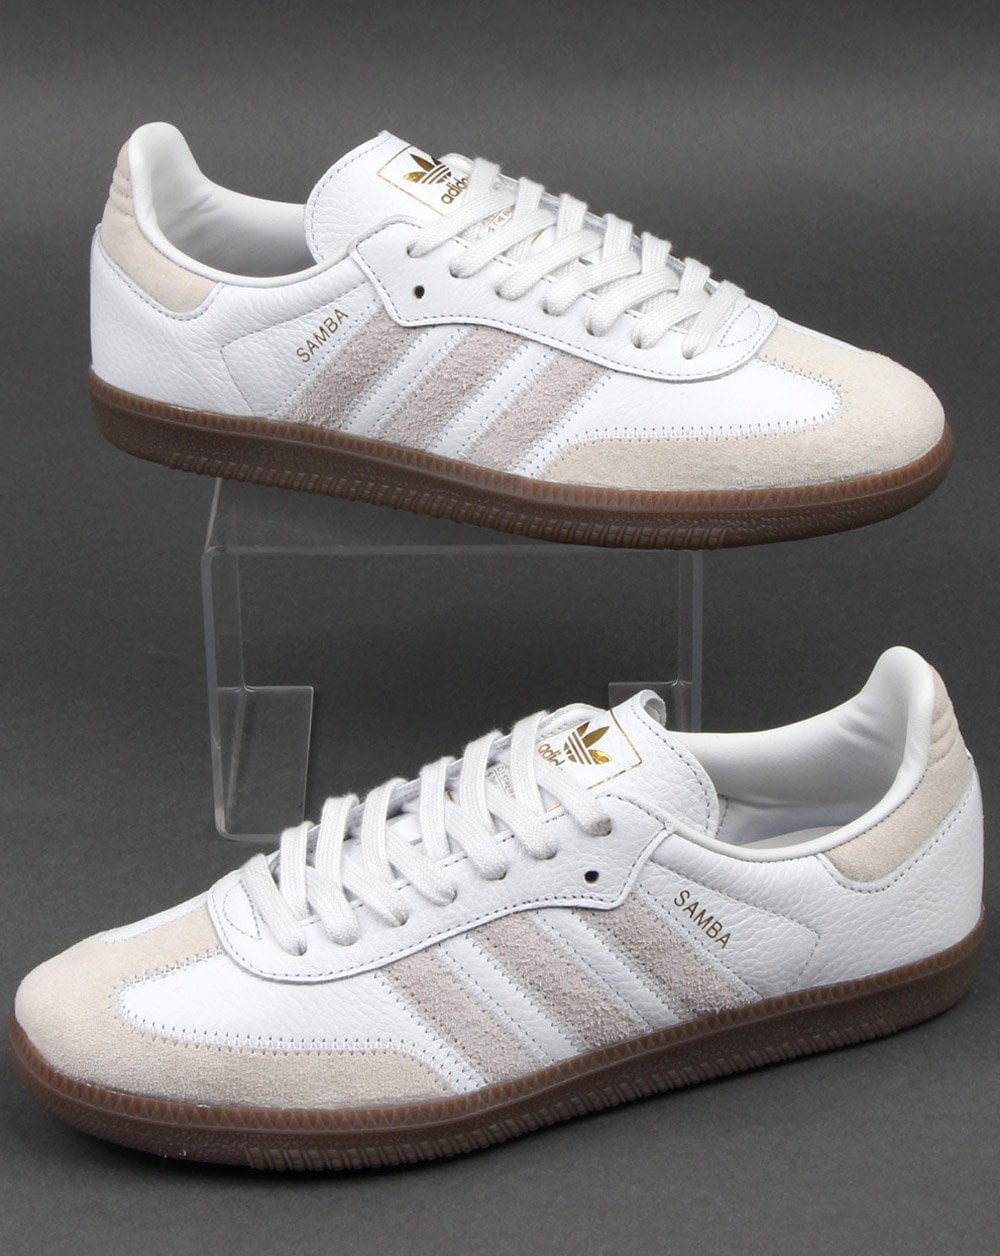 72c224f40bb9 Adidas Samba Og Ft Trainers Crystal White